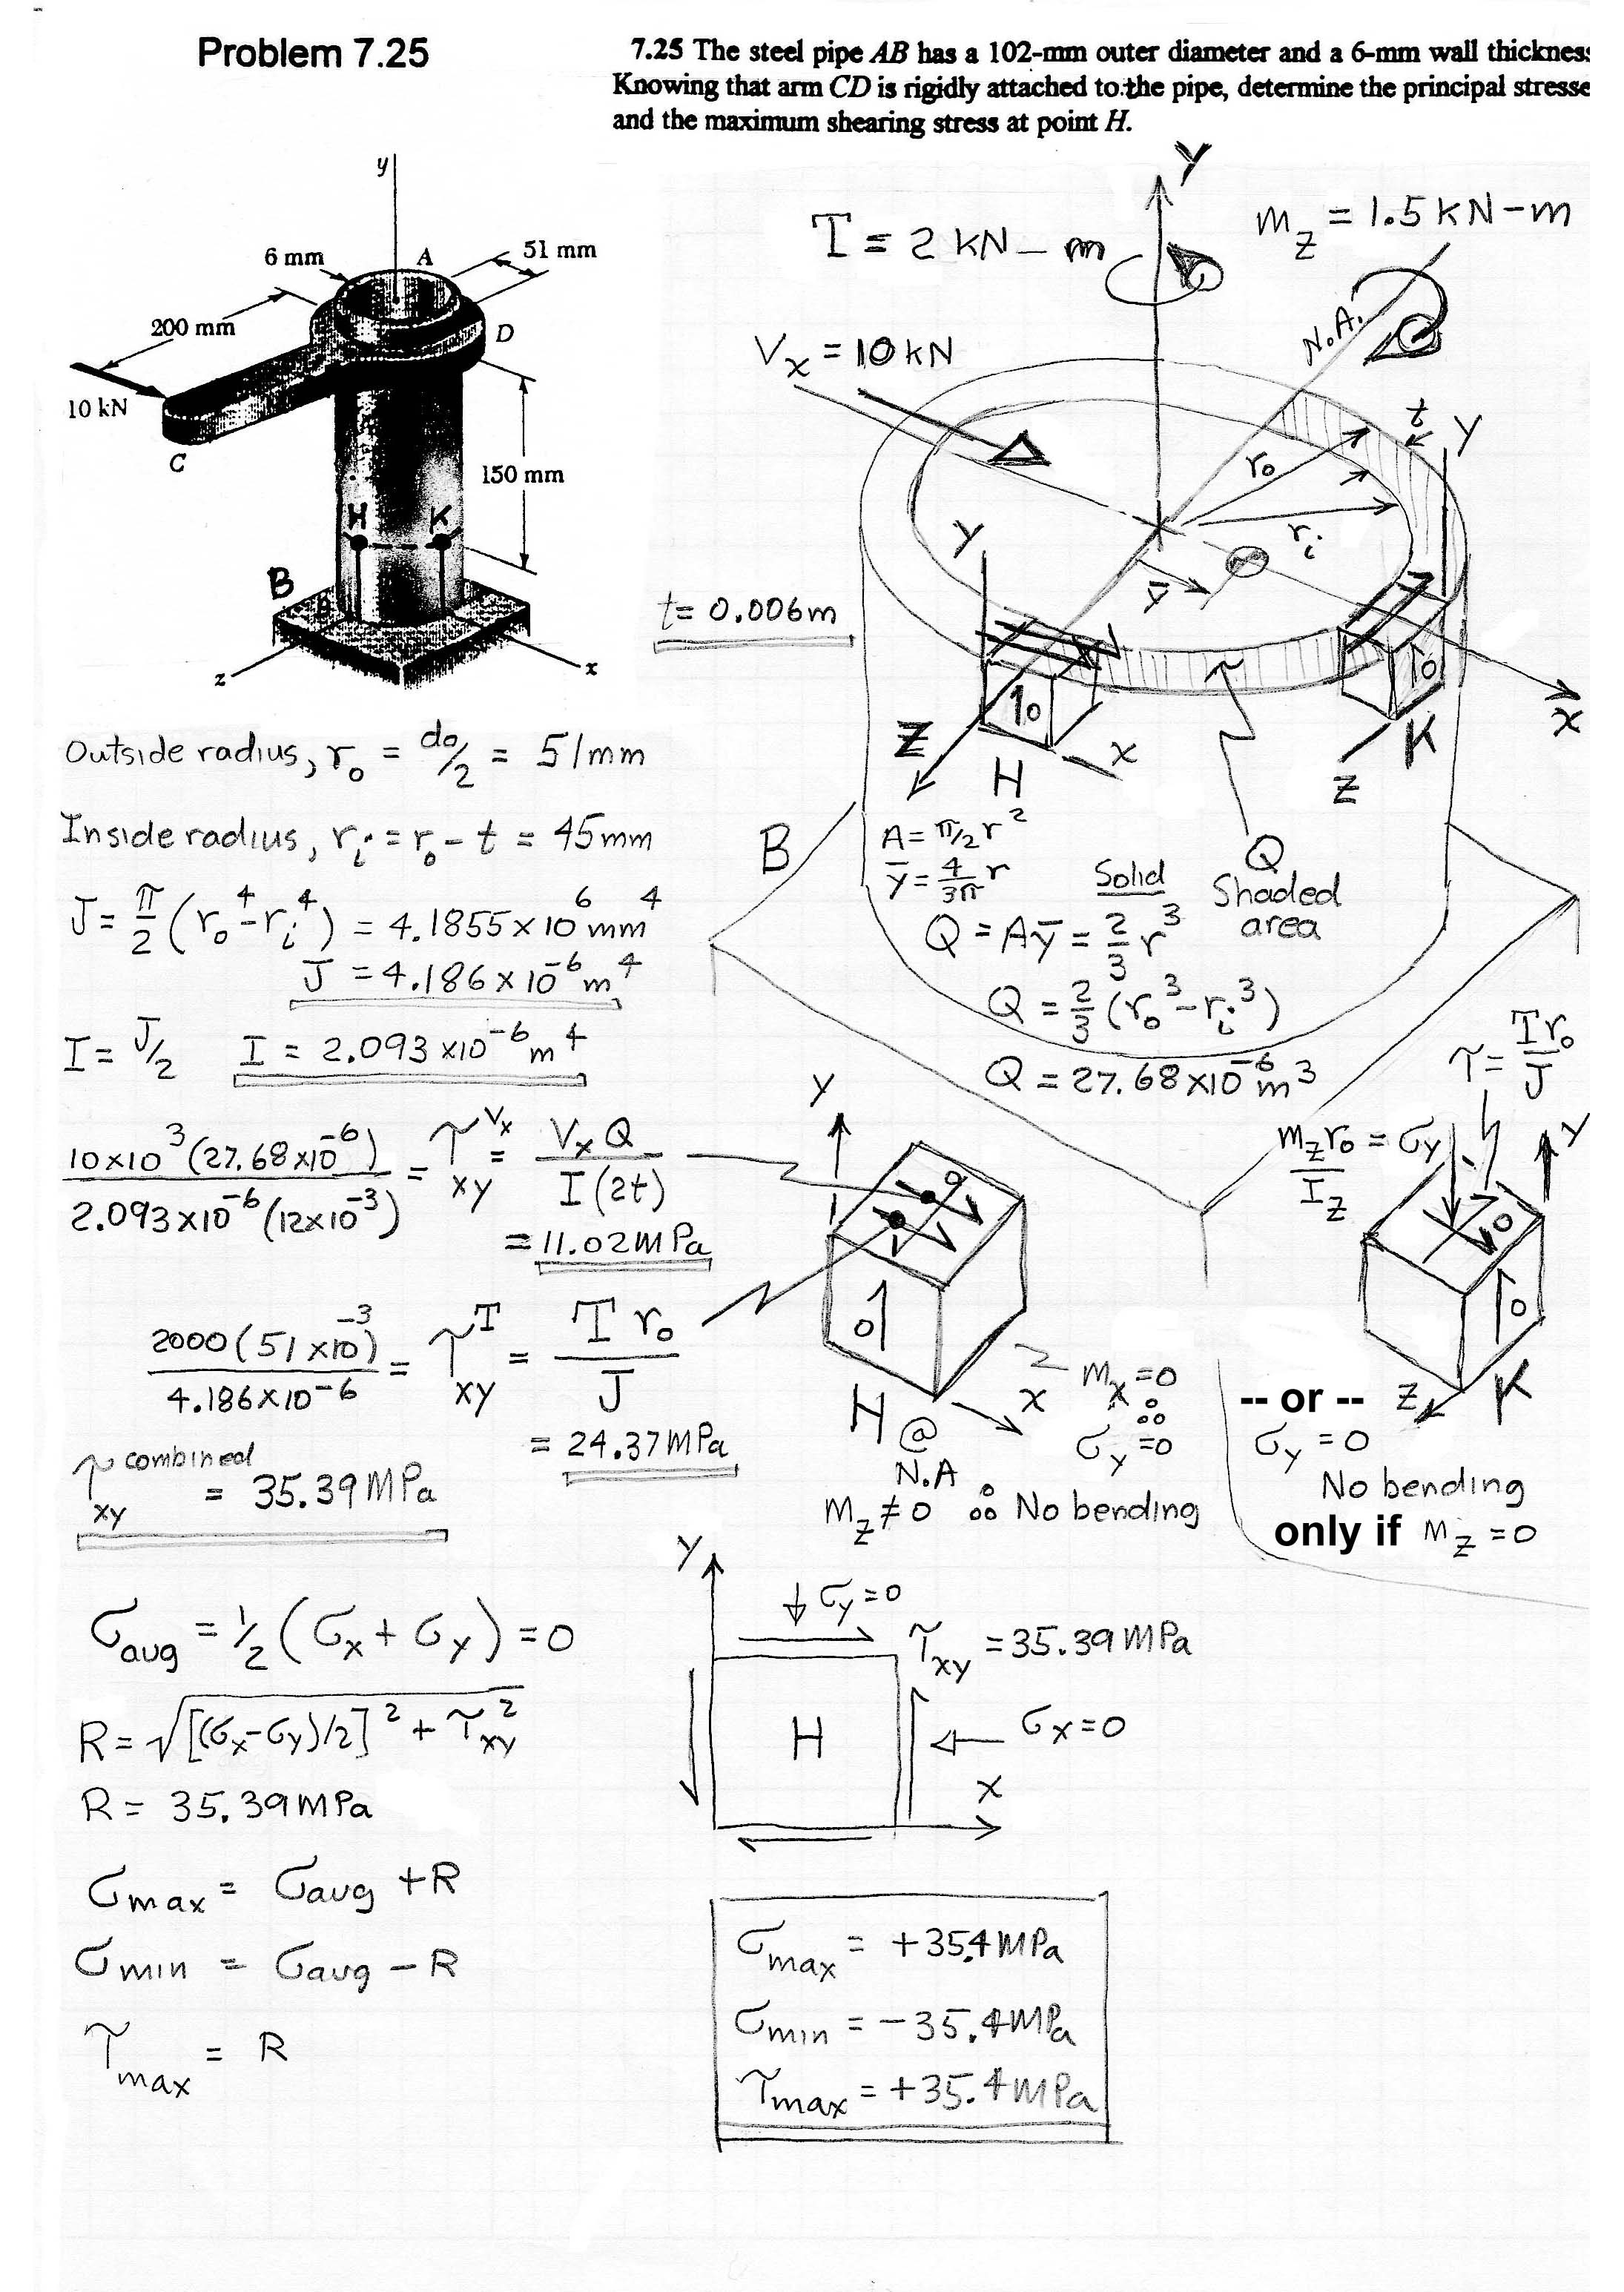 13 12 11 10 solutions to beam integration problems 9 8 7 6